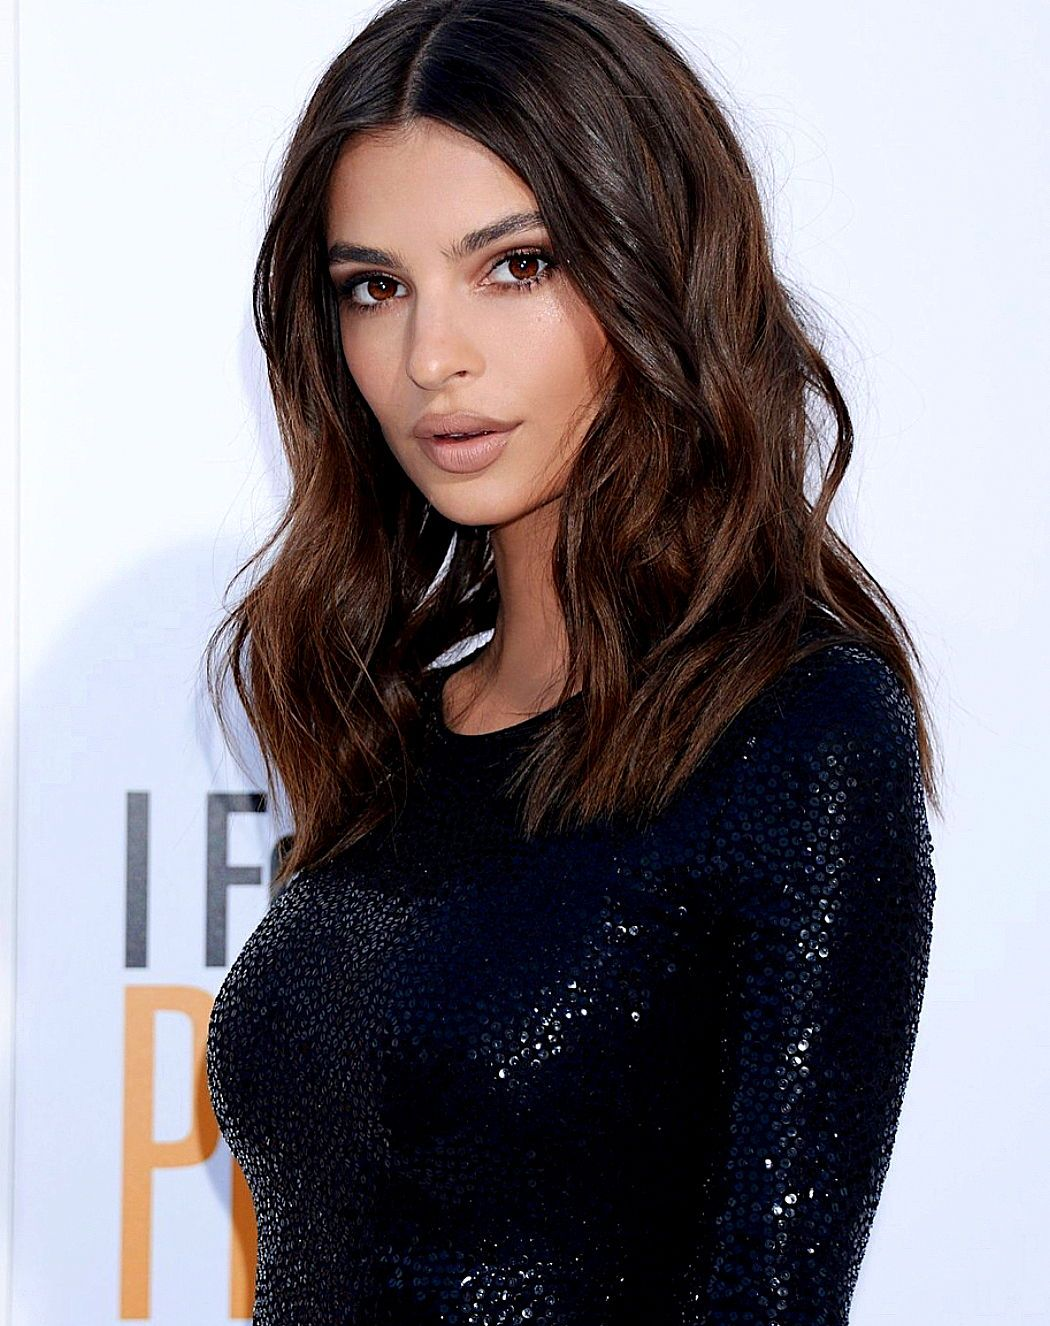 Emily Ratajkowski nude makeup look and curly hair style on the red